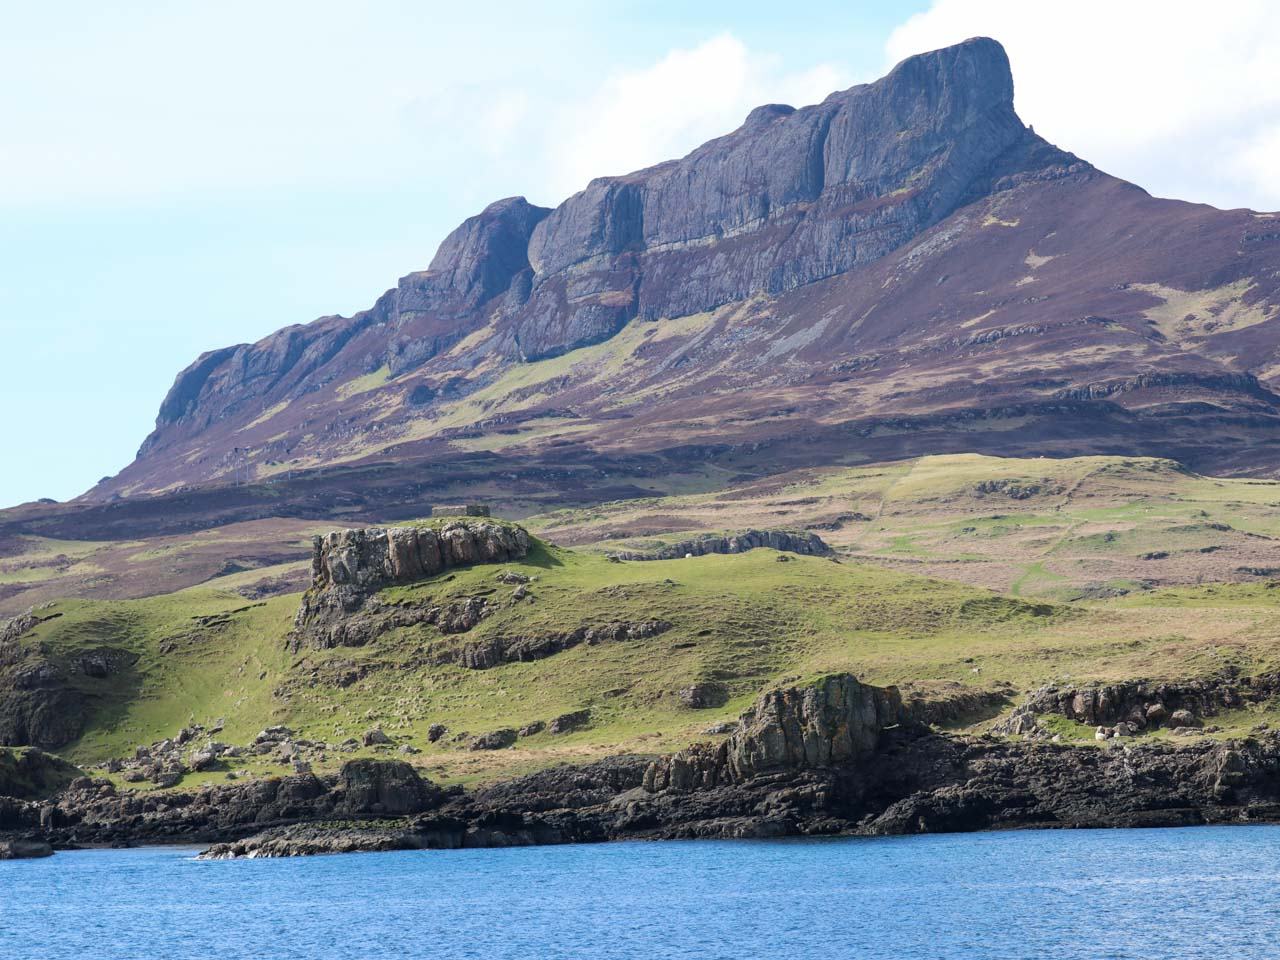 Profile of volcanic An Sgurr on Isle of Eigg, Small Isles, Hebrides, as seen from the ocean